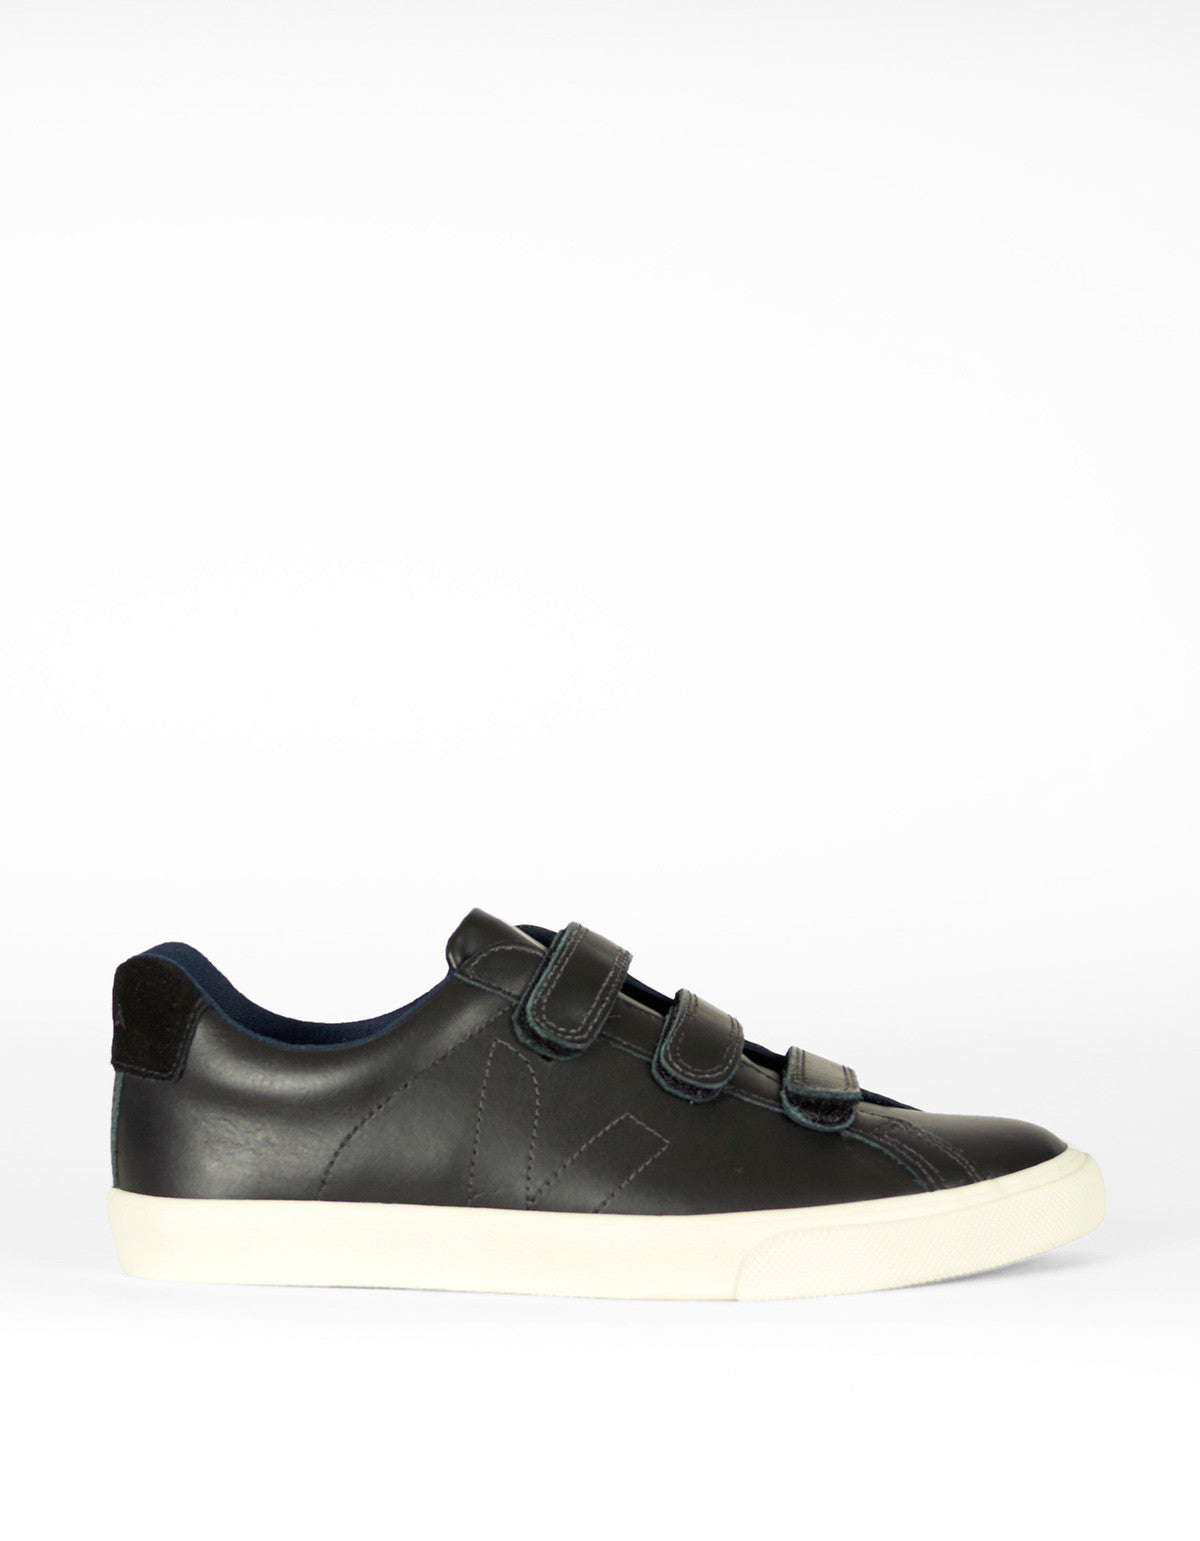 Veja Esplar 3 Locks Leather Sneaker Black Black - Still Life - 1